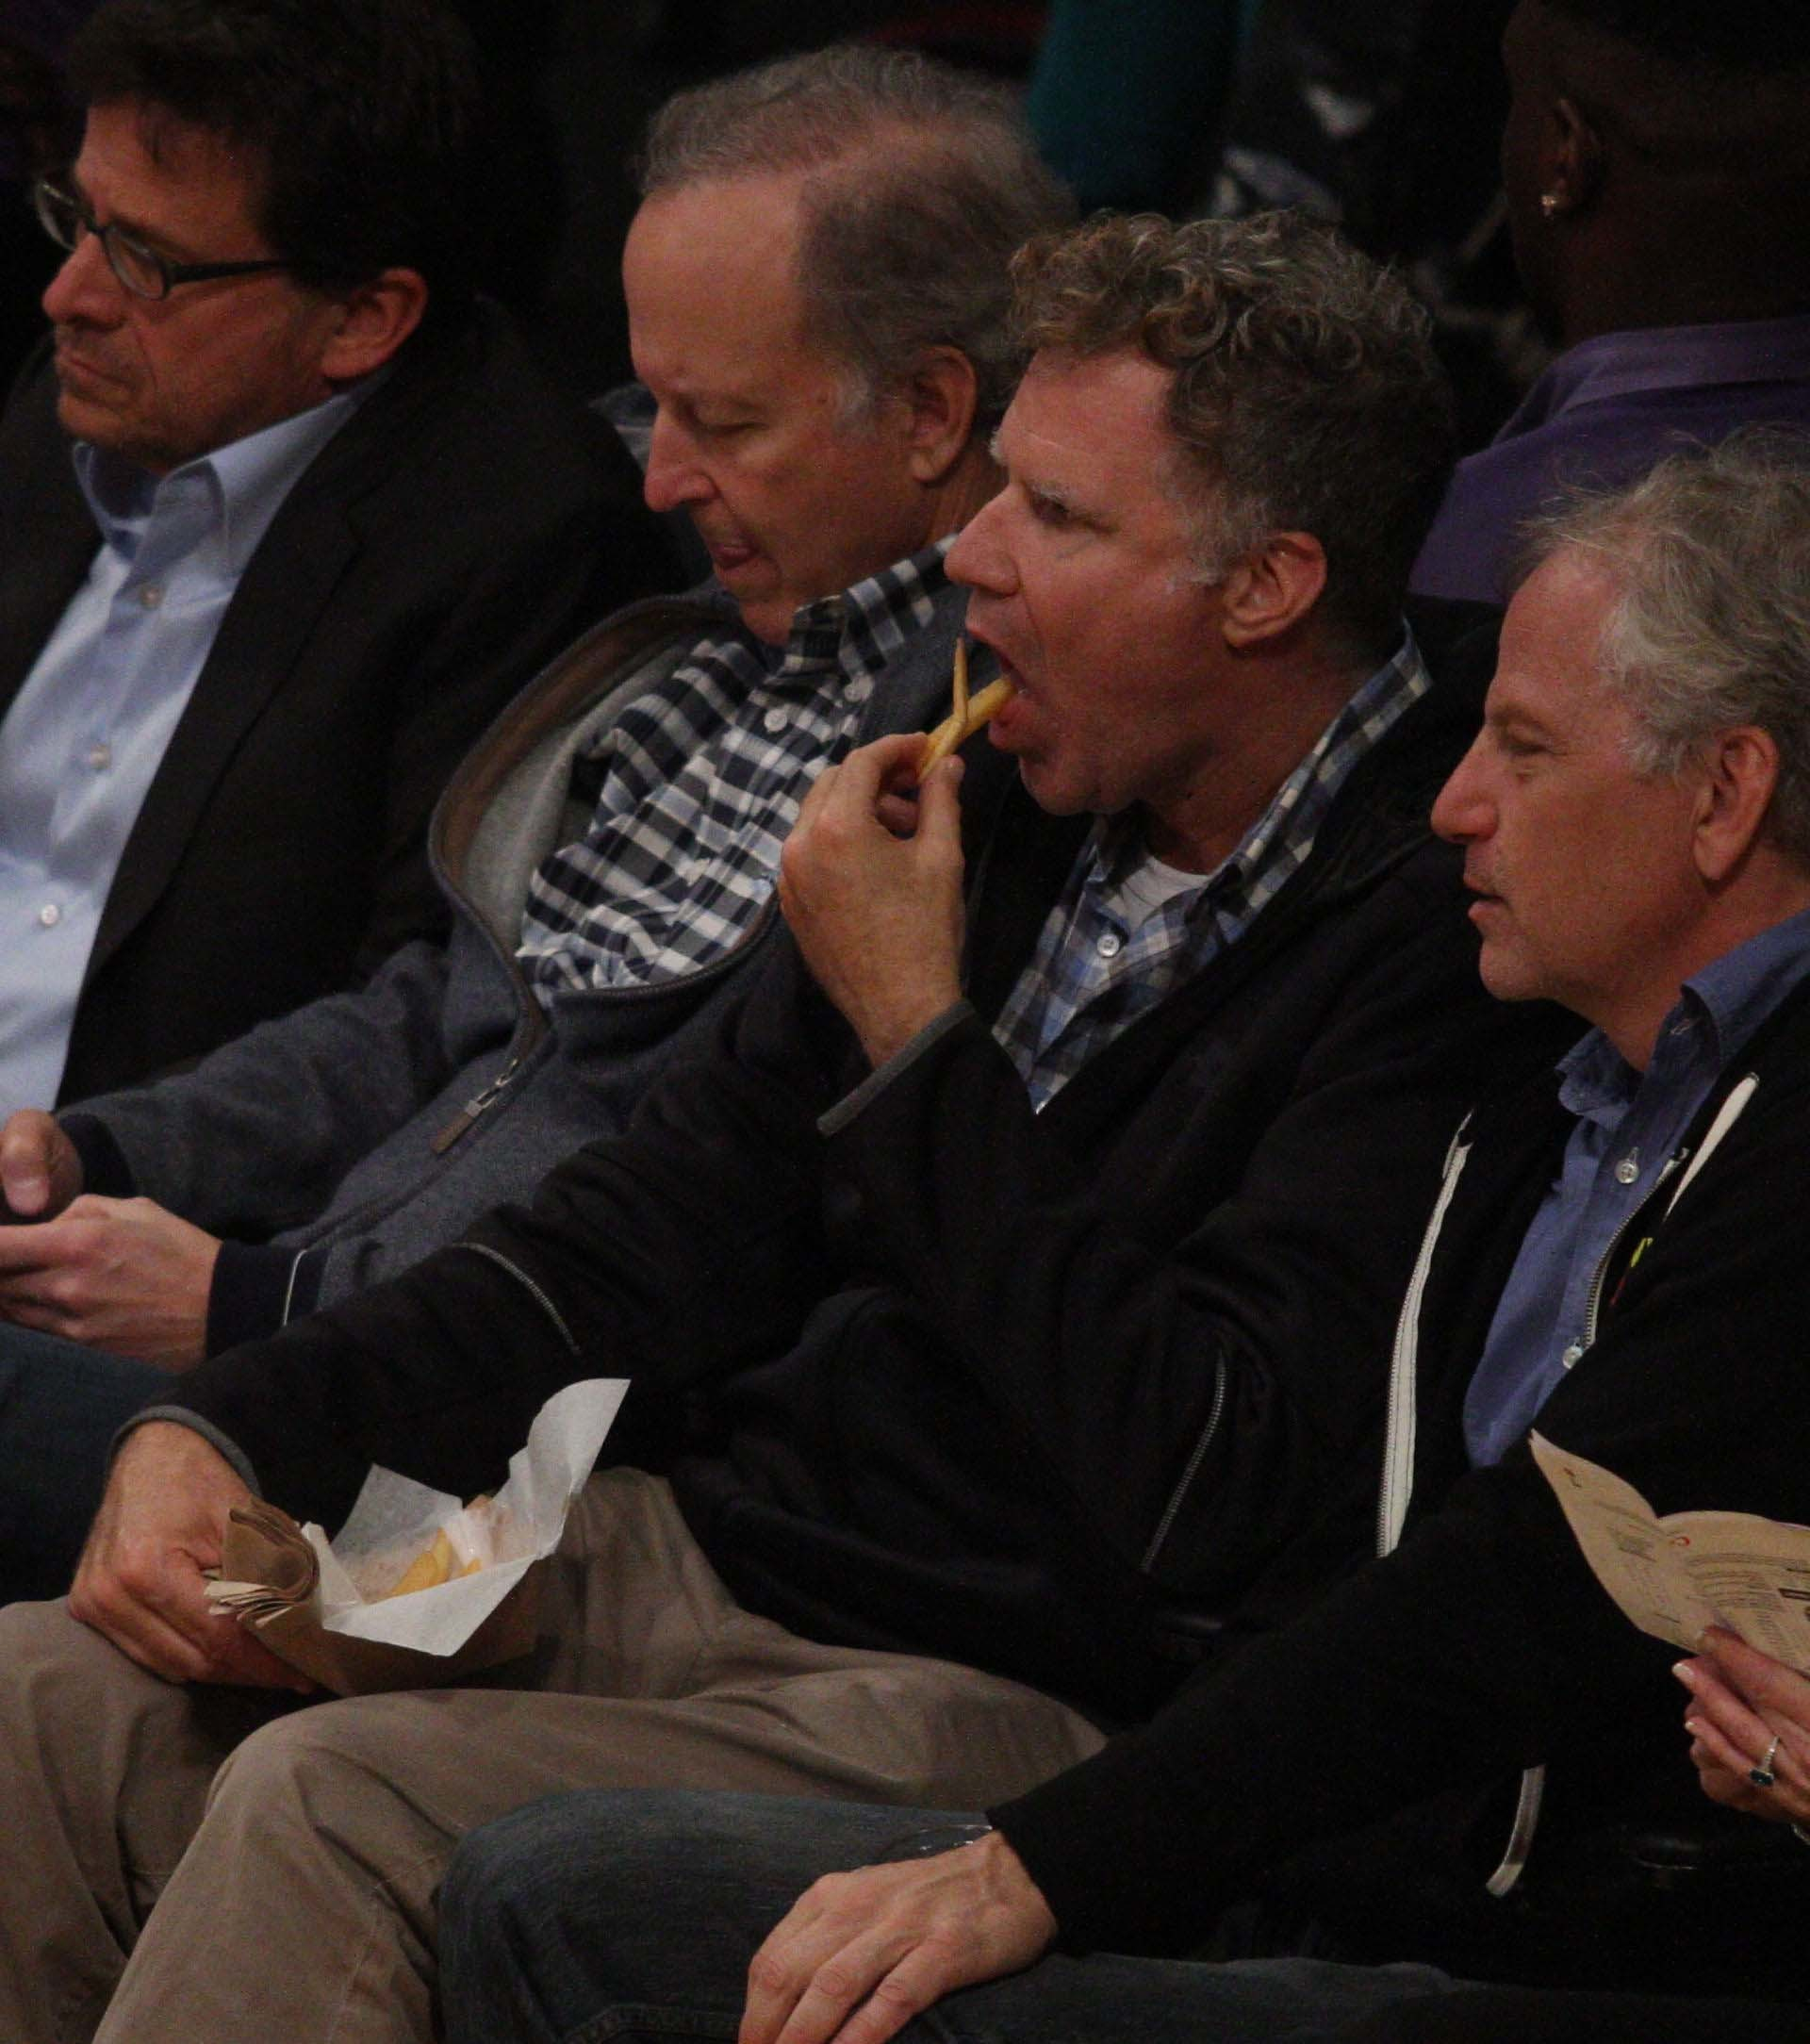 Will Ferrell attends the Lakers vs Warriors game in Los Angeles on Nov. 29, 2017.